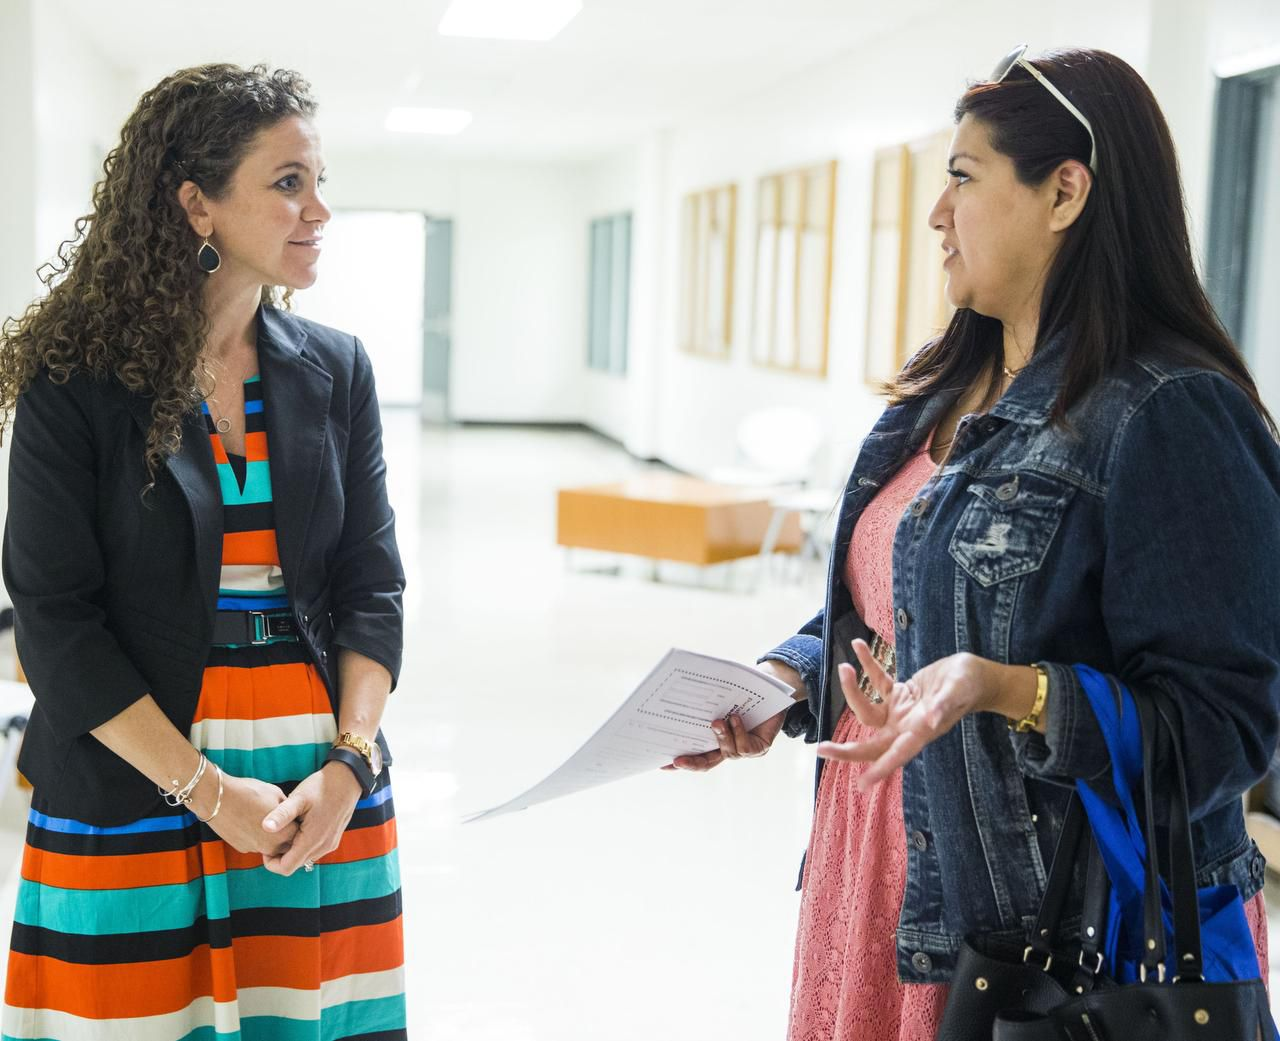 Principal Sarah Ritsema, left, helps Calette Benavidez with paperwork for her daughters during a community barbecue for Innovation, Design and Entrepreneurship Academy at Fannin High School in Dallas.